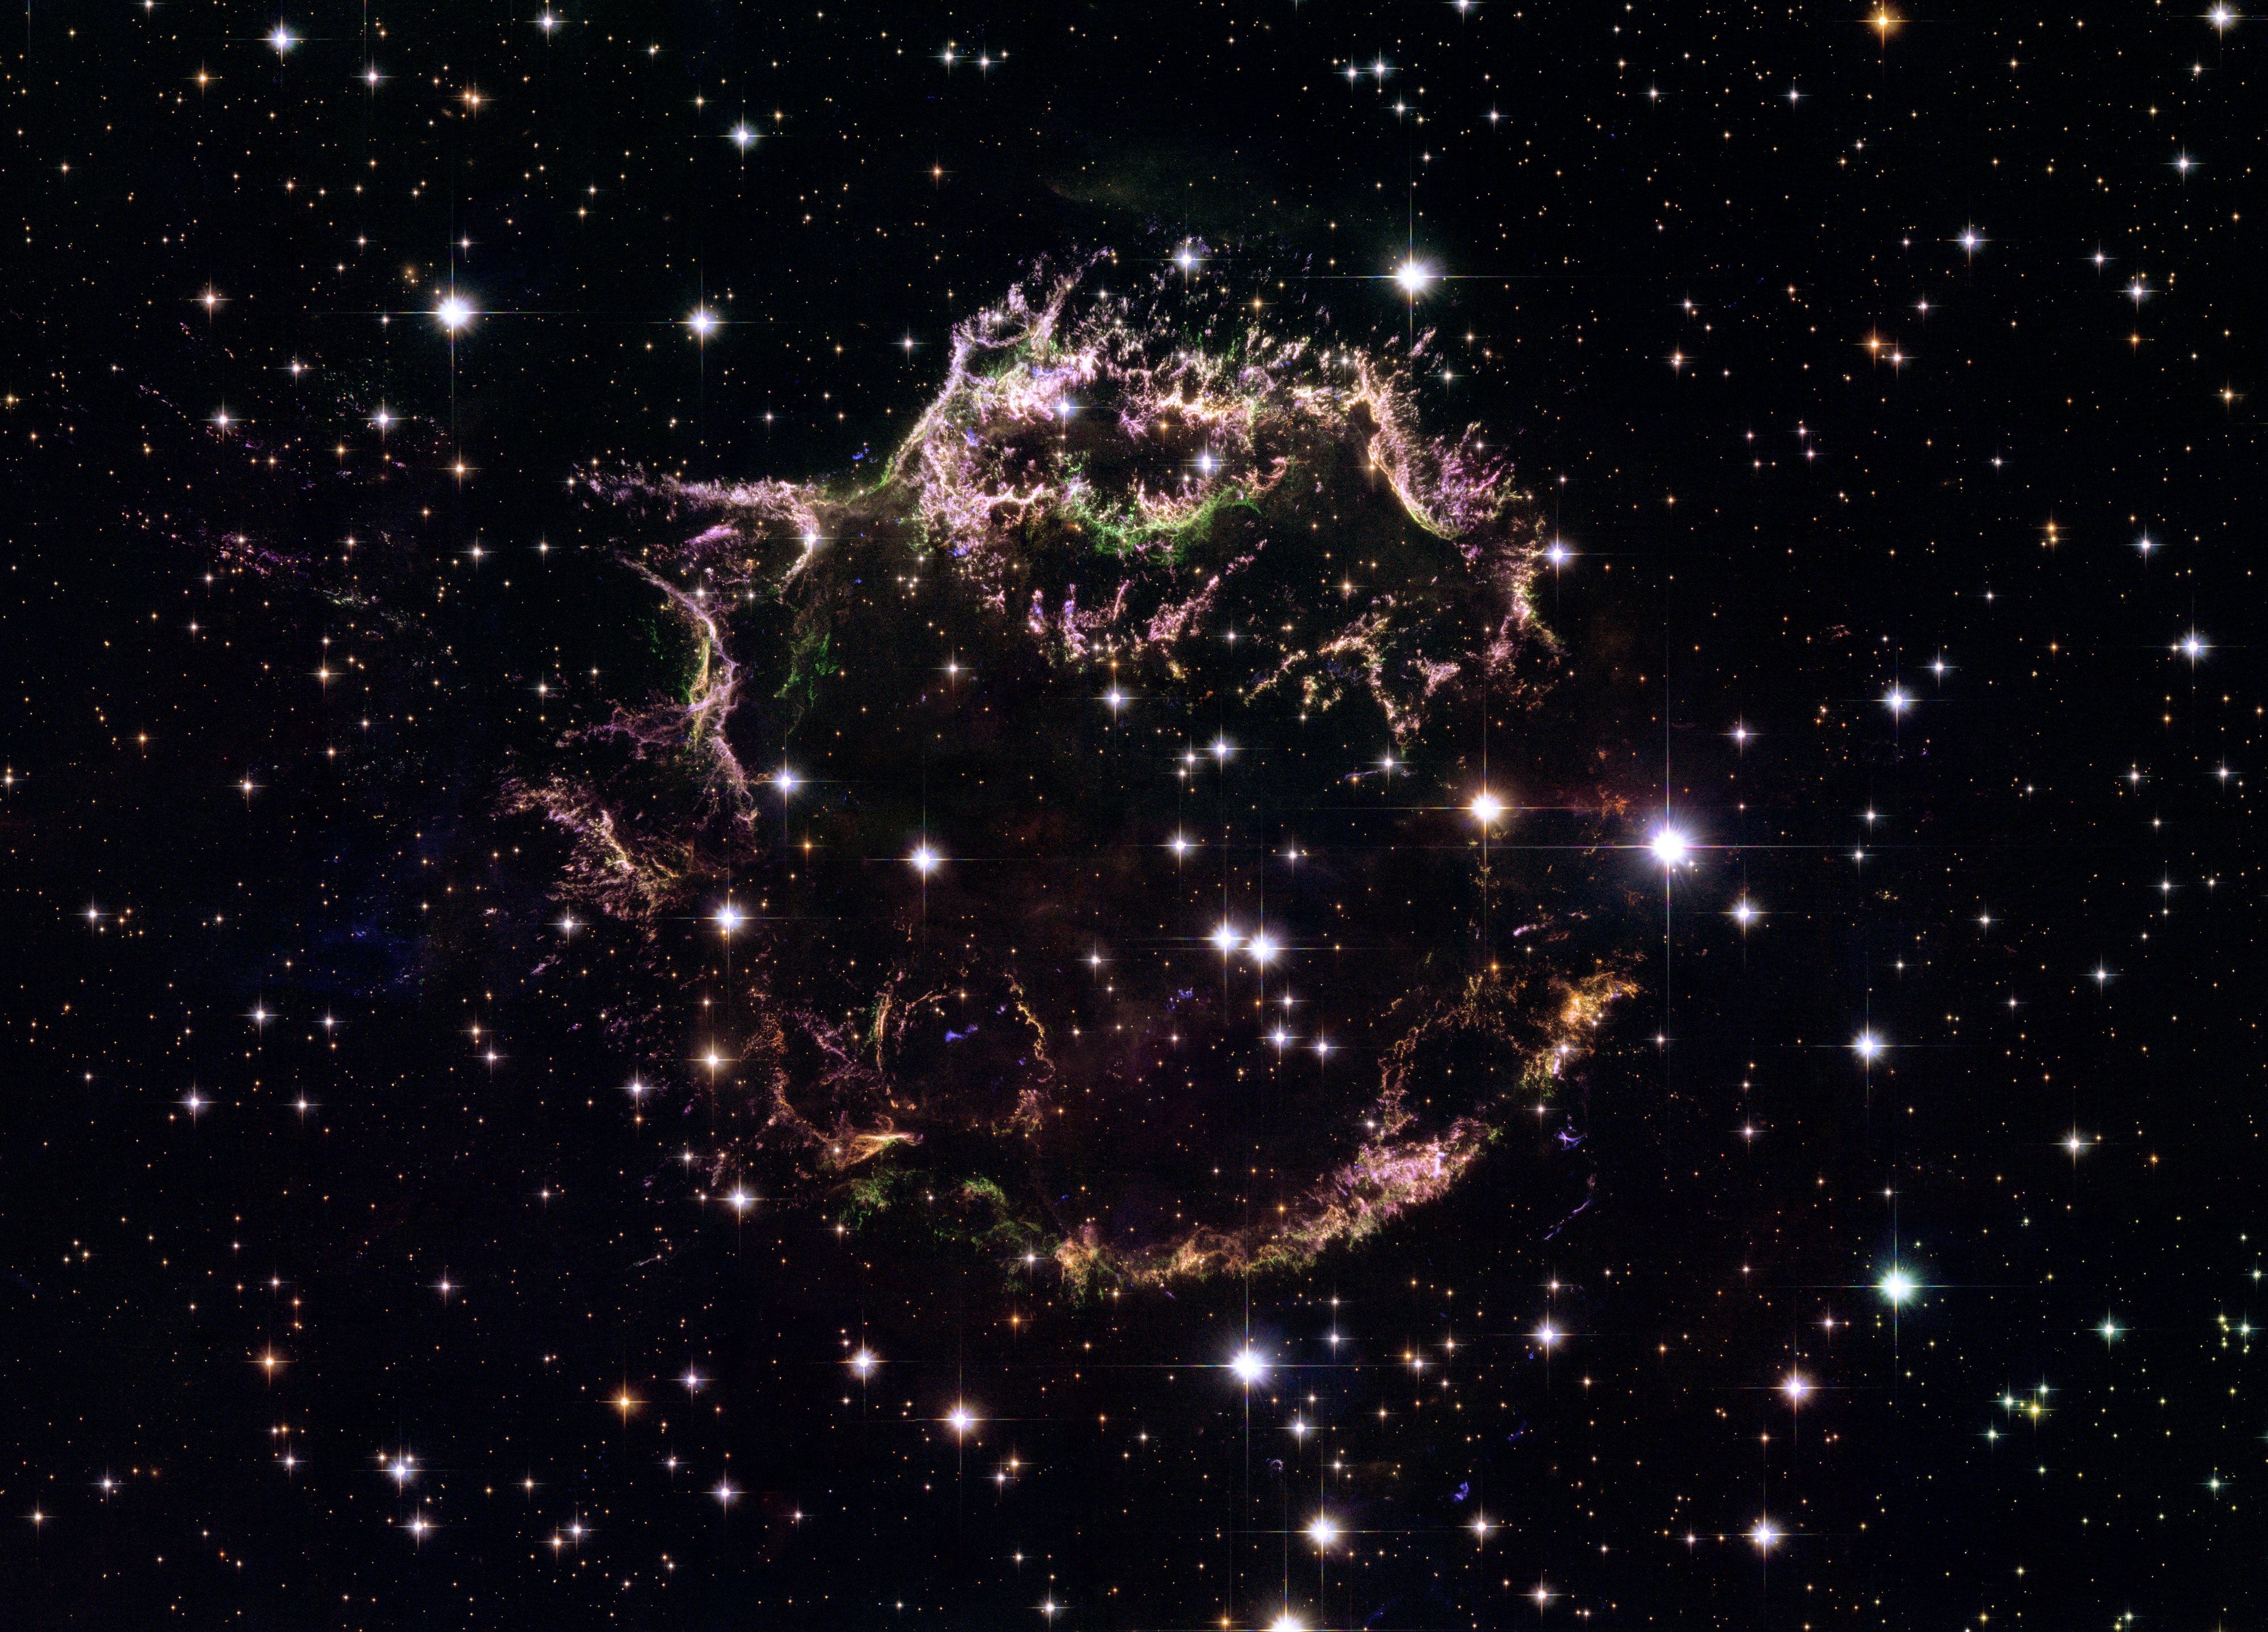 Space in Images - 2006 - 08 - Hubble's view of supernova ...